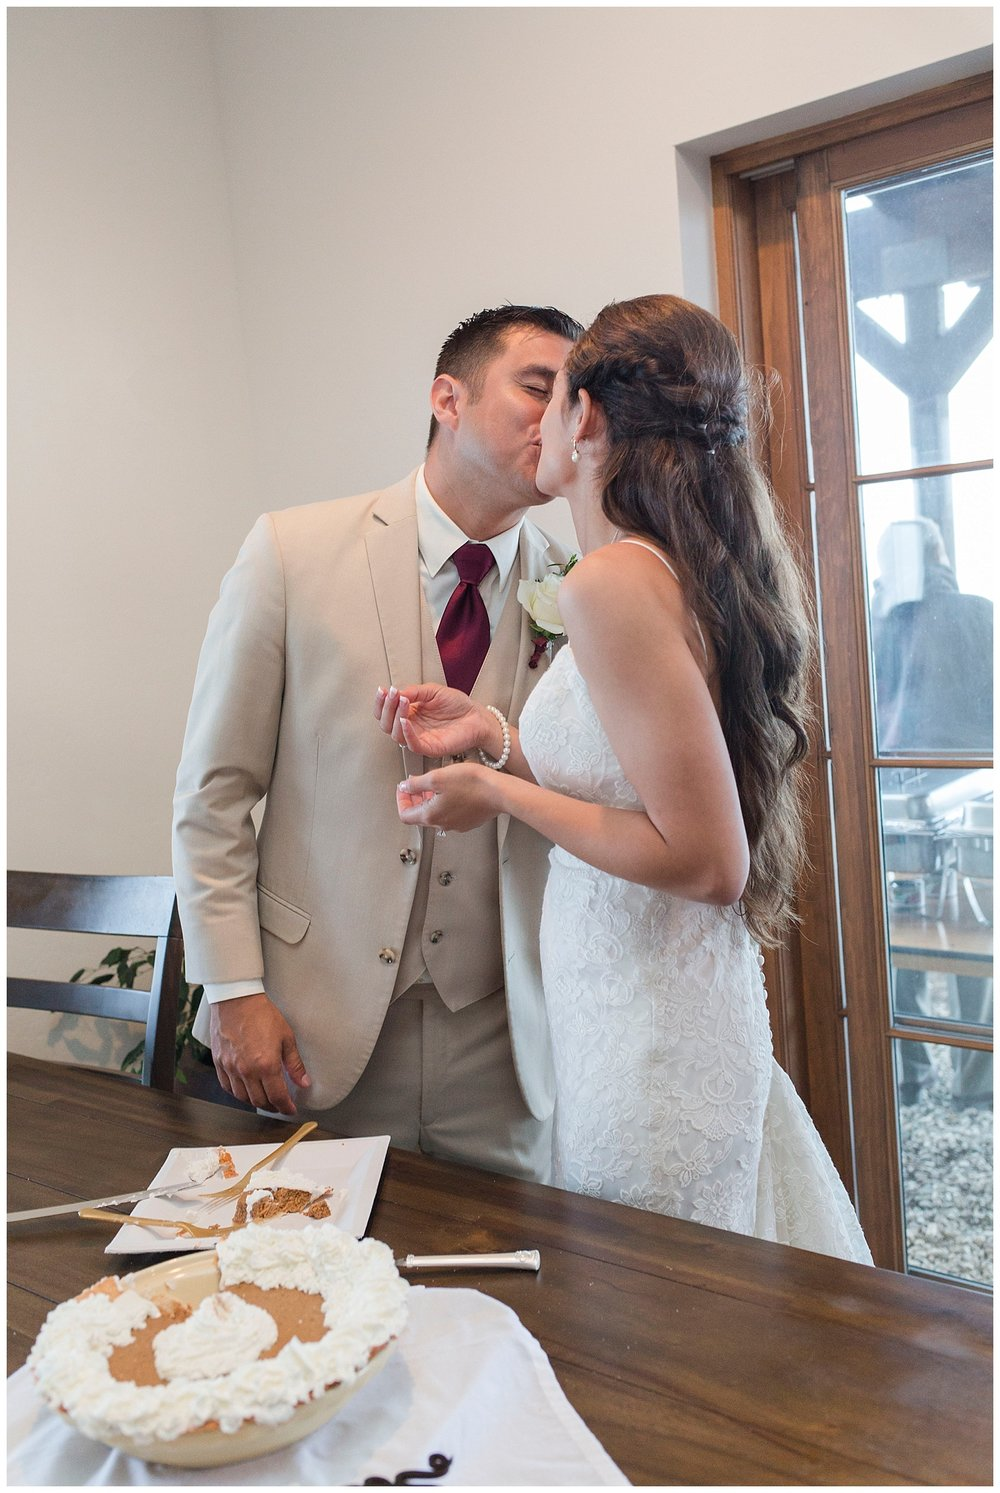 a_Ryan+Allyson_Renoda Campbell Photography_San Luis Obispo Wedding Photographer-0347.jpg